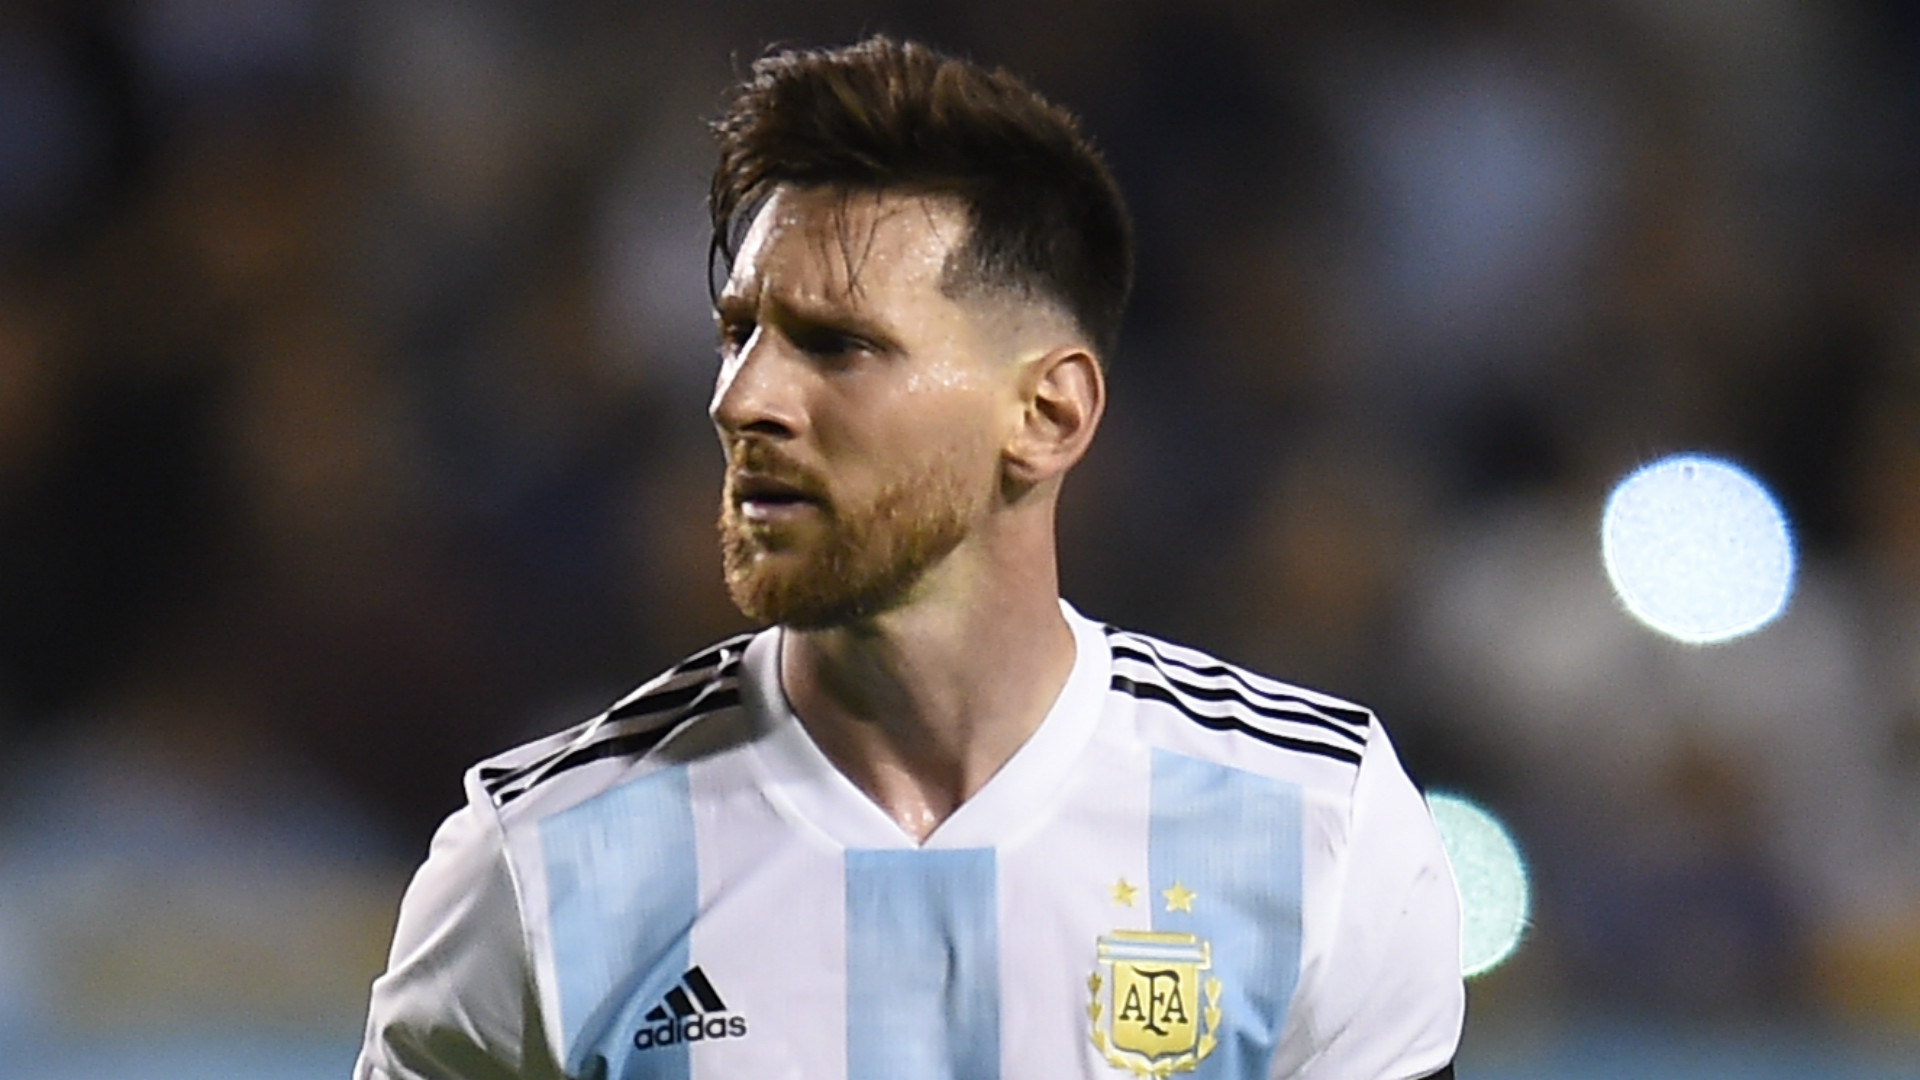 Argentina friendly set to be cancelled after Messi threats